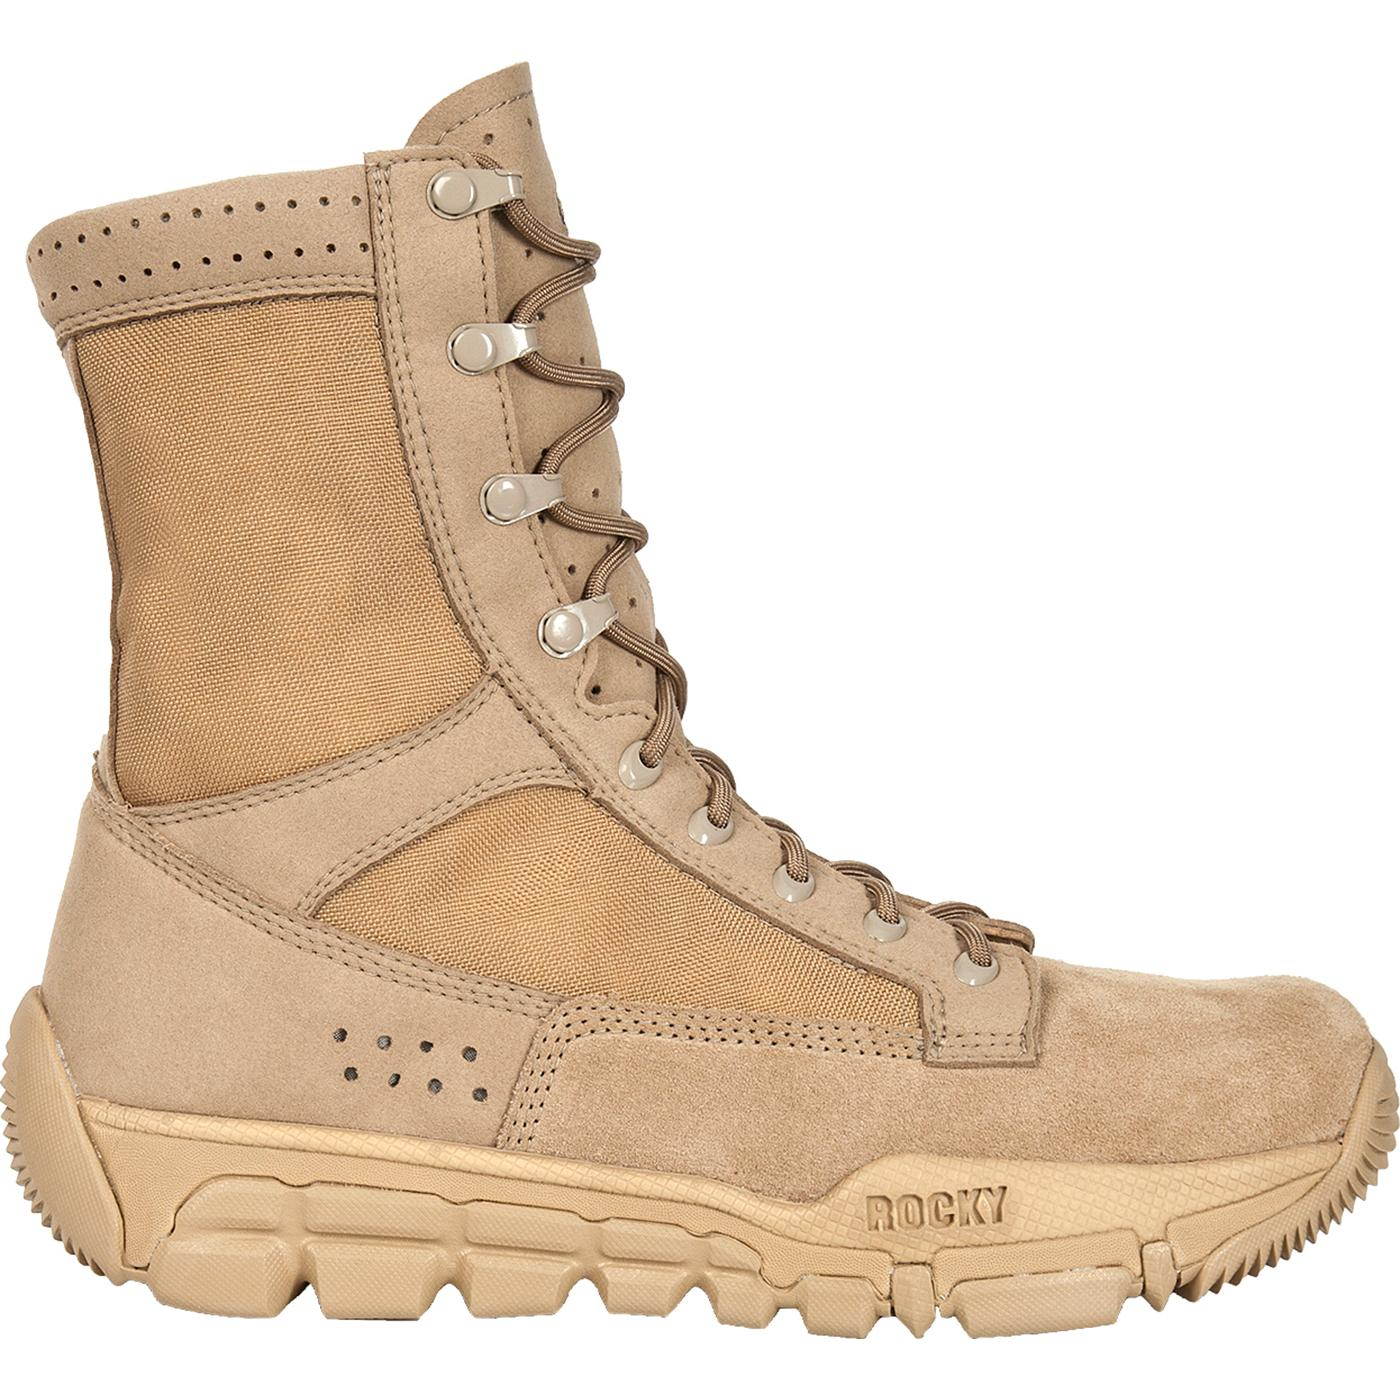 Desert Tan Commercial Military Boots Rocky C5c Rkyc003